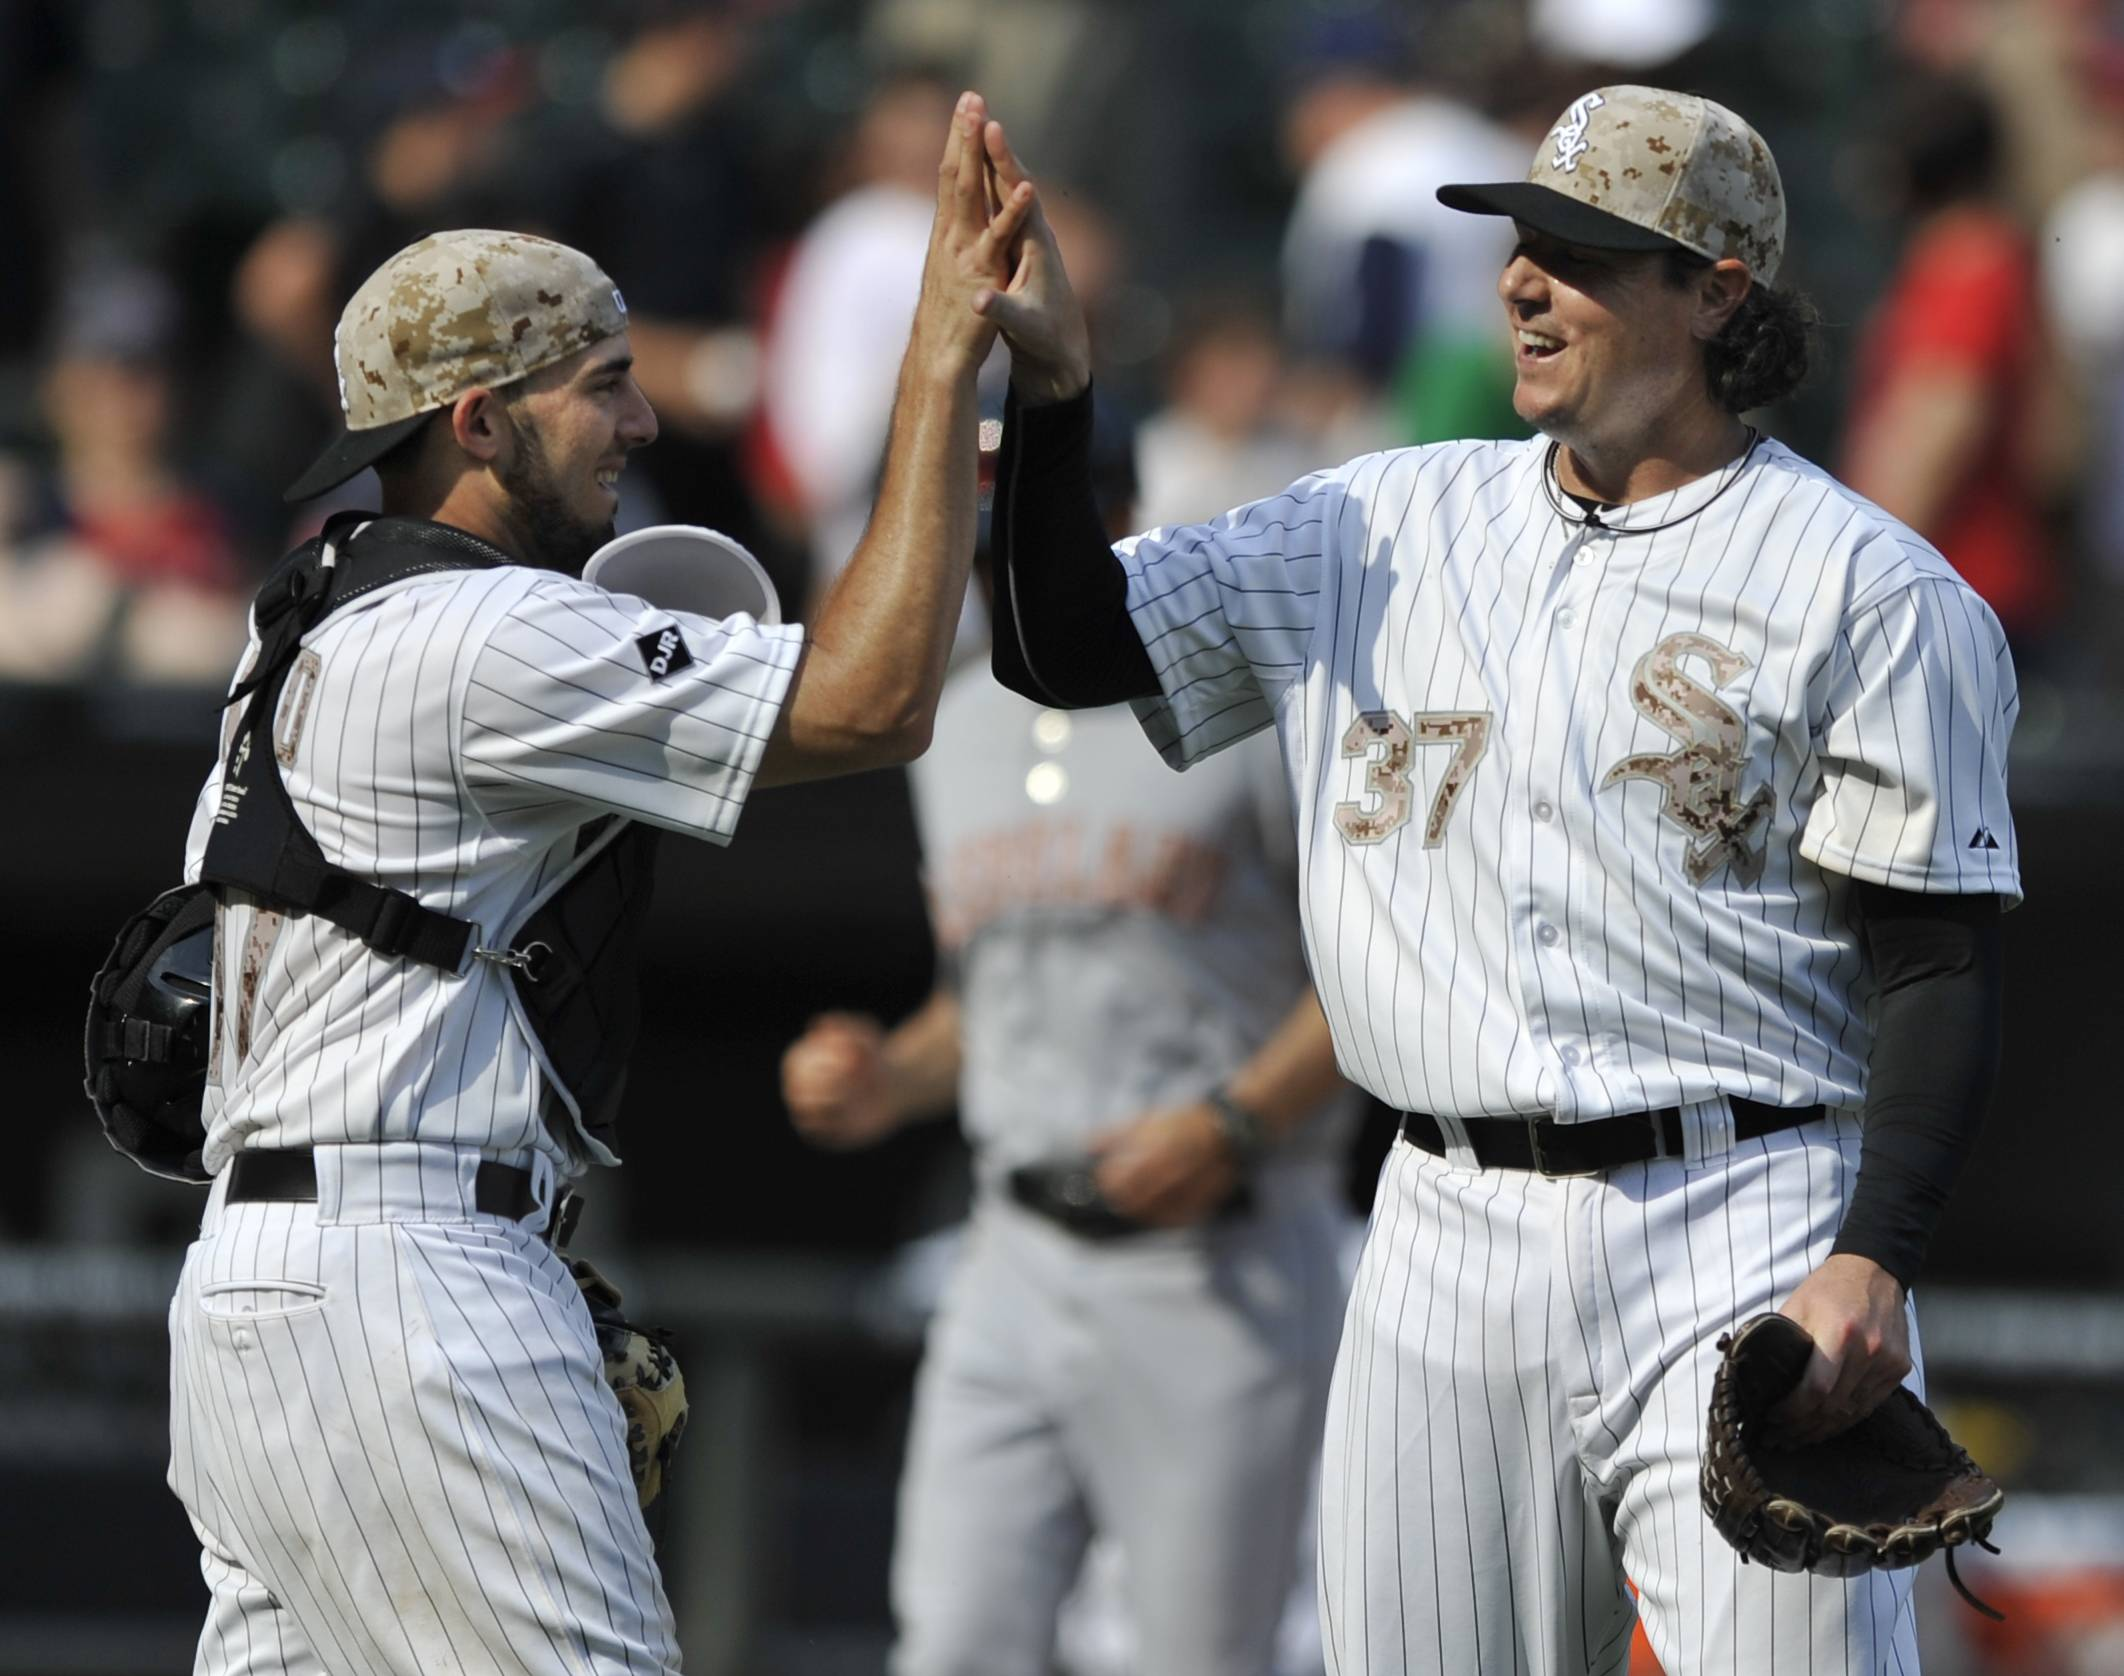 Chicago White Sox closing pitcher Scott Downs (37), celebrates with catcher Adrian Nieto, left, after defeating the Cleveland Indians 6-2 during a baseball game in Chicago, Monday.